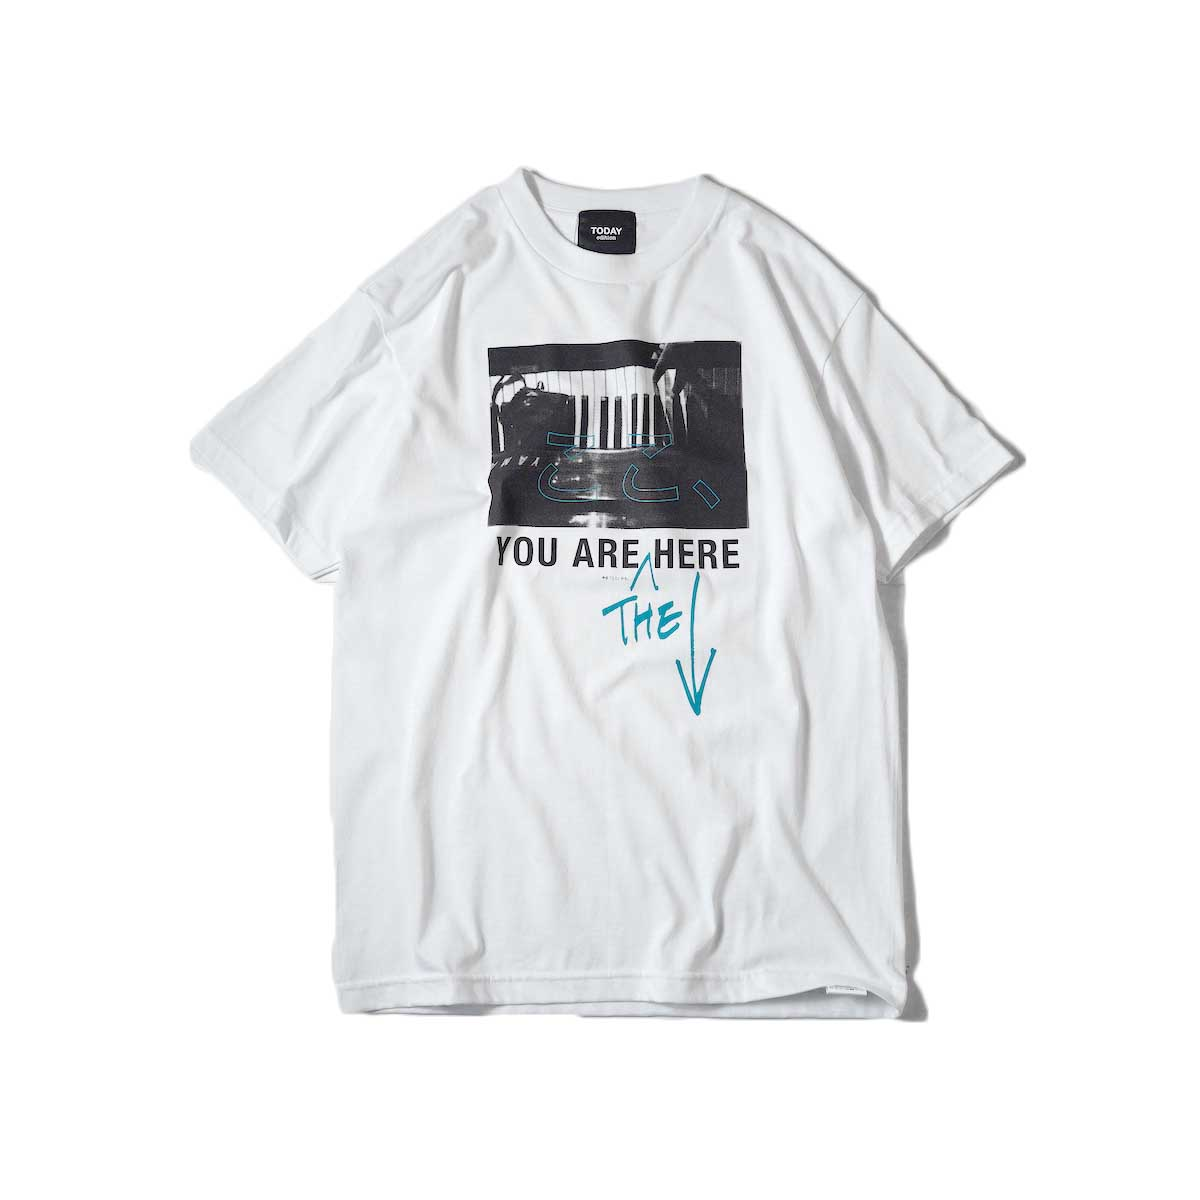 TODAY edition / ここ、Piano SS Tee (White)